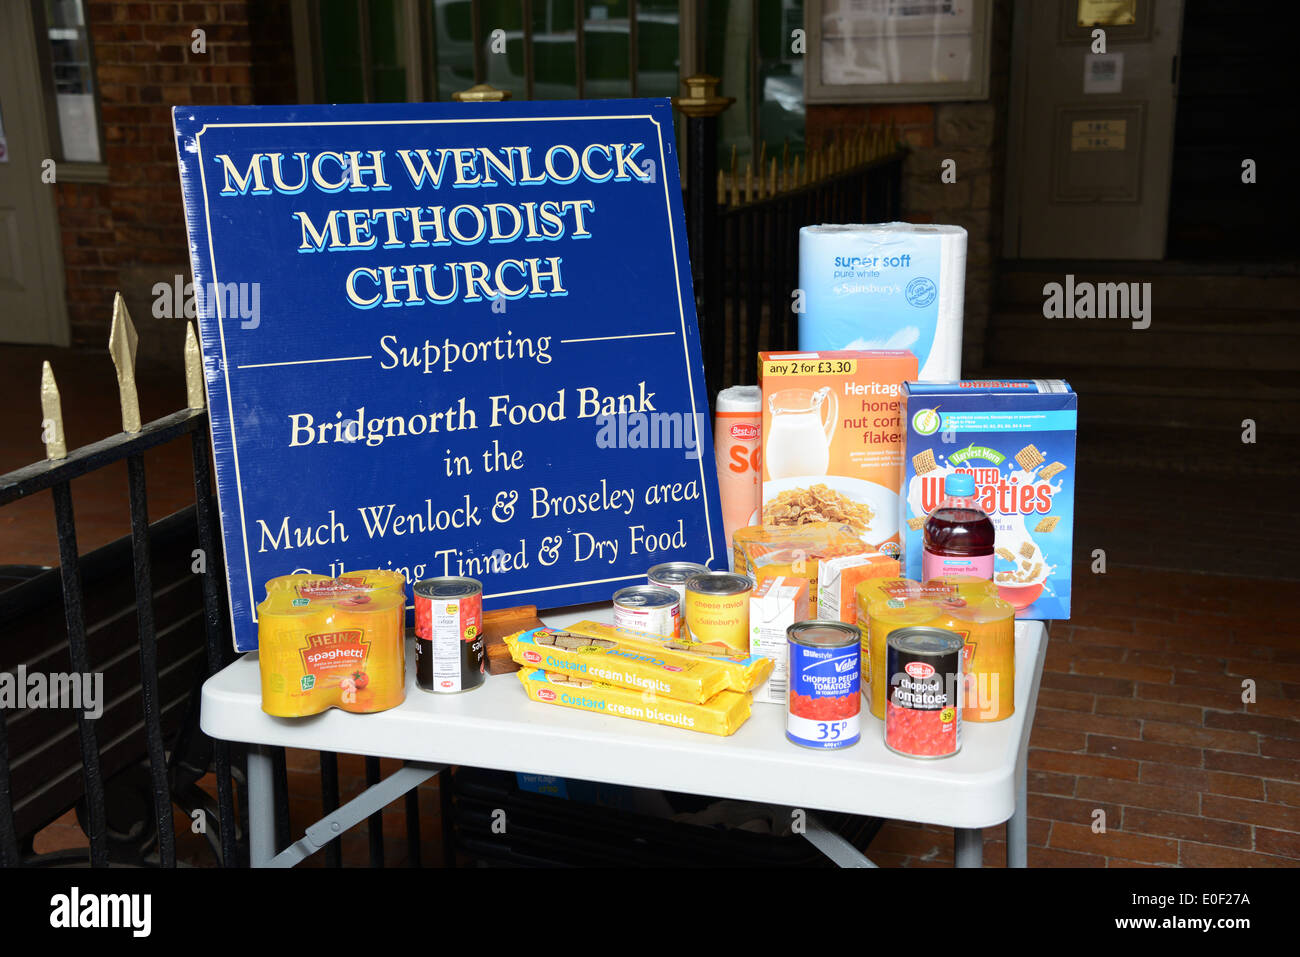 Collection for food bank, Much Wenlock, Shropshire, UK - Stock Image